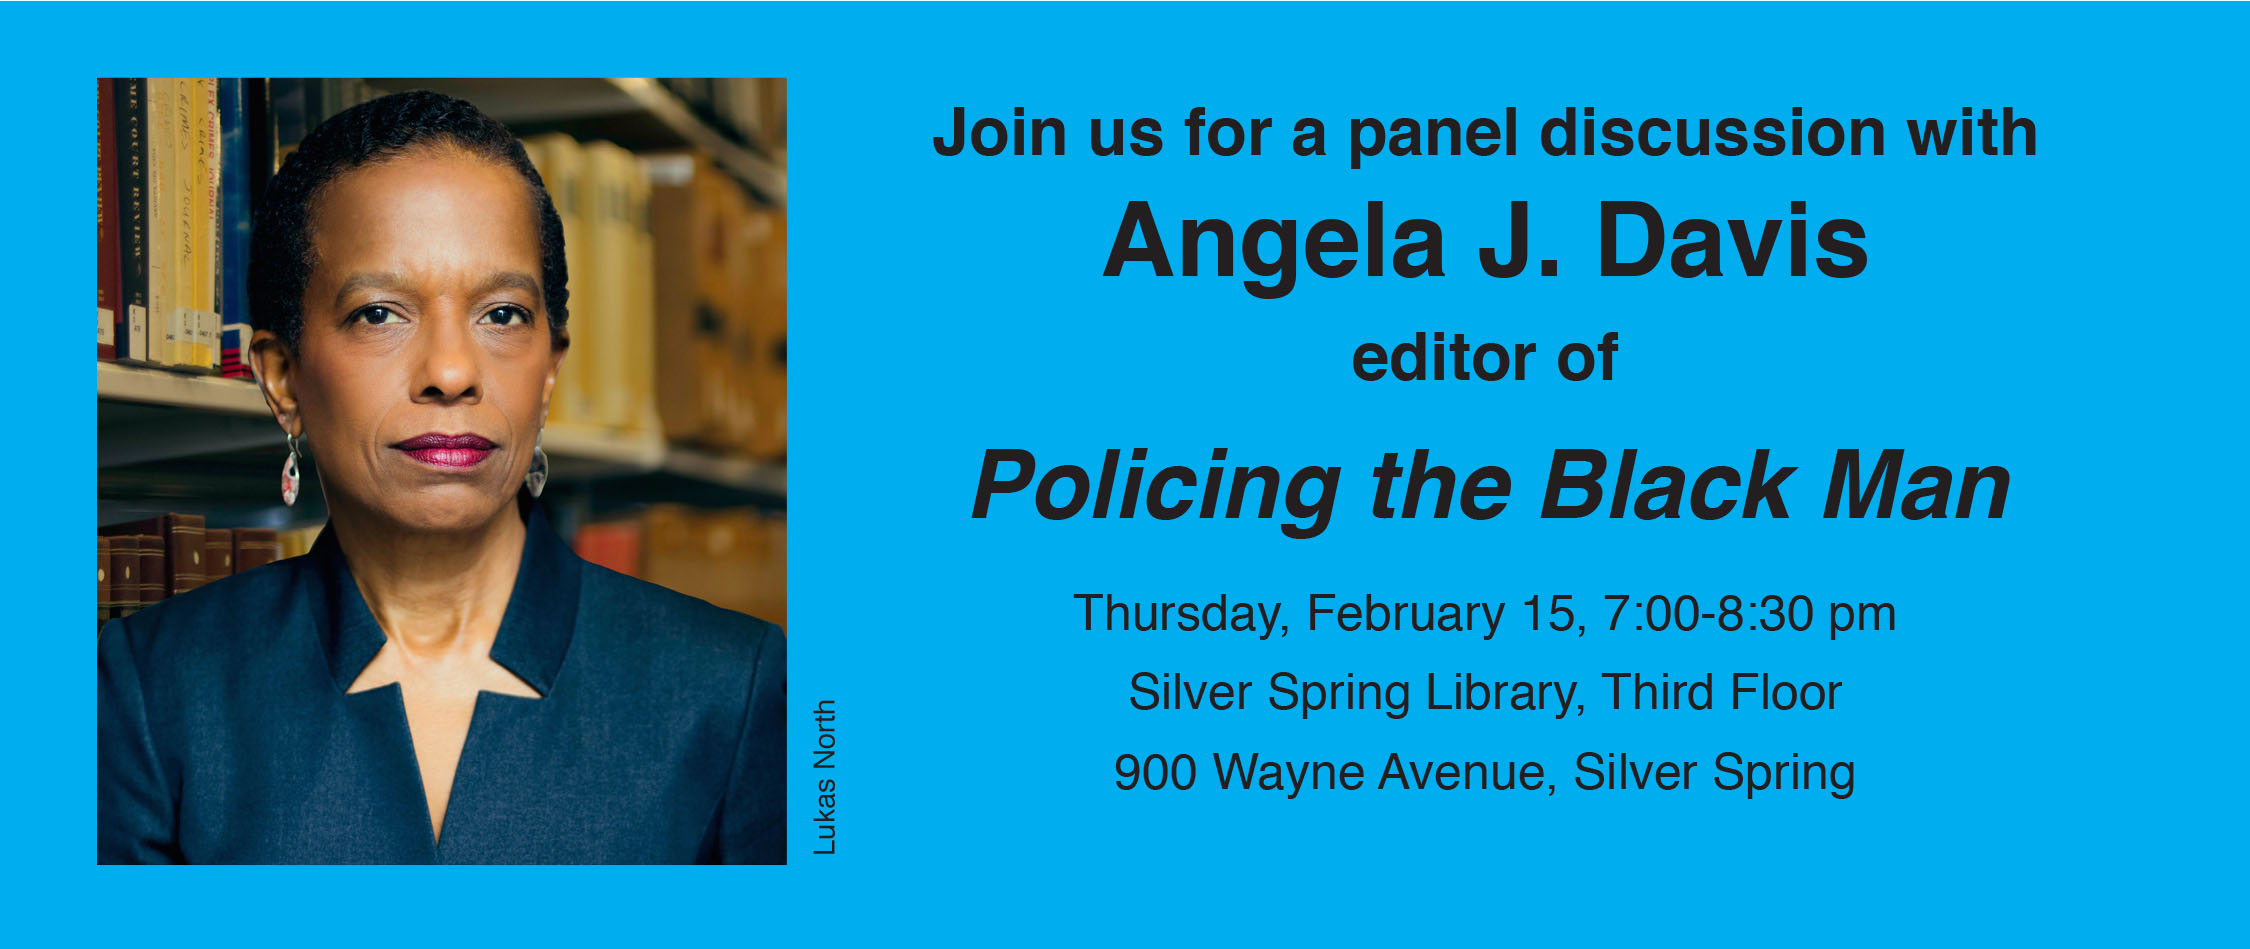 Author Series: Join us for a panel discussion with Angela J. Davis, editor of Policing the Black Man